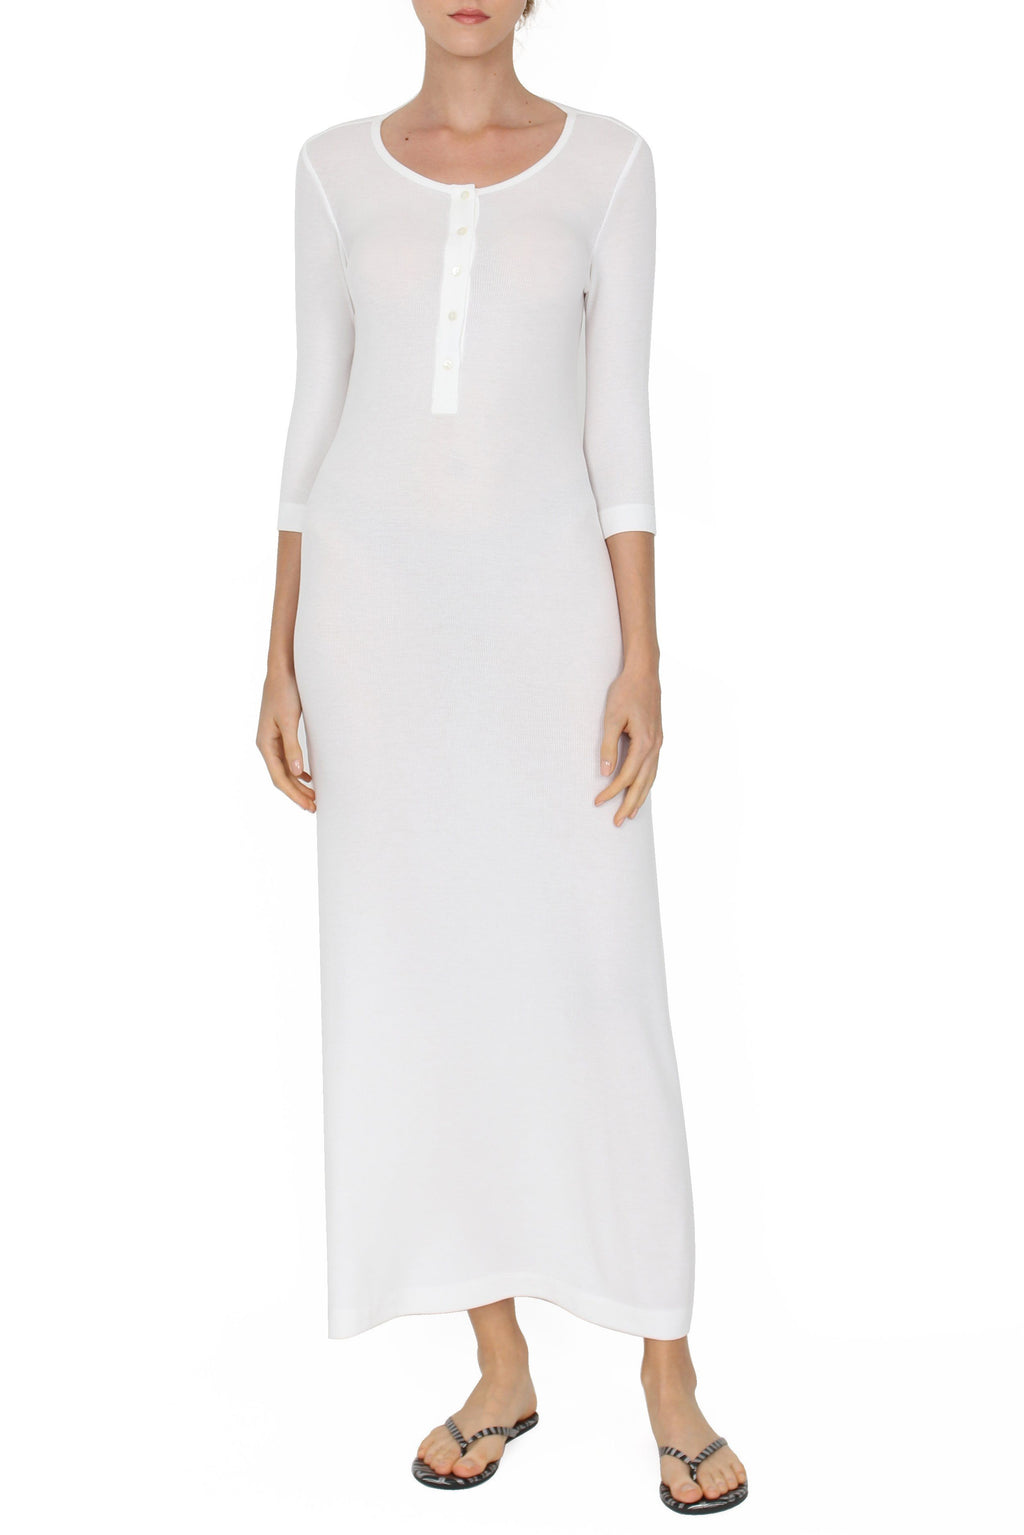 Ribbed Tunisien Dress Marie France Van Damme 0 Pure White